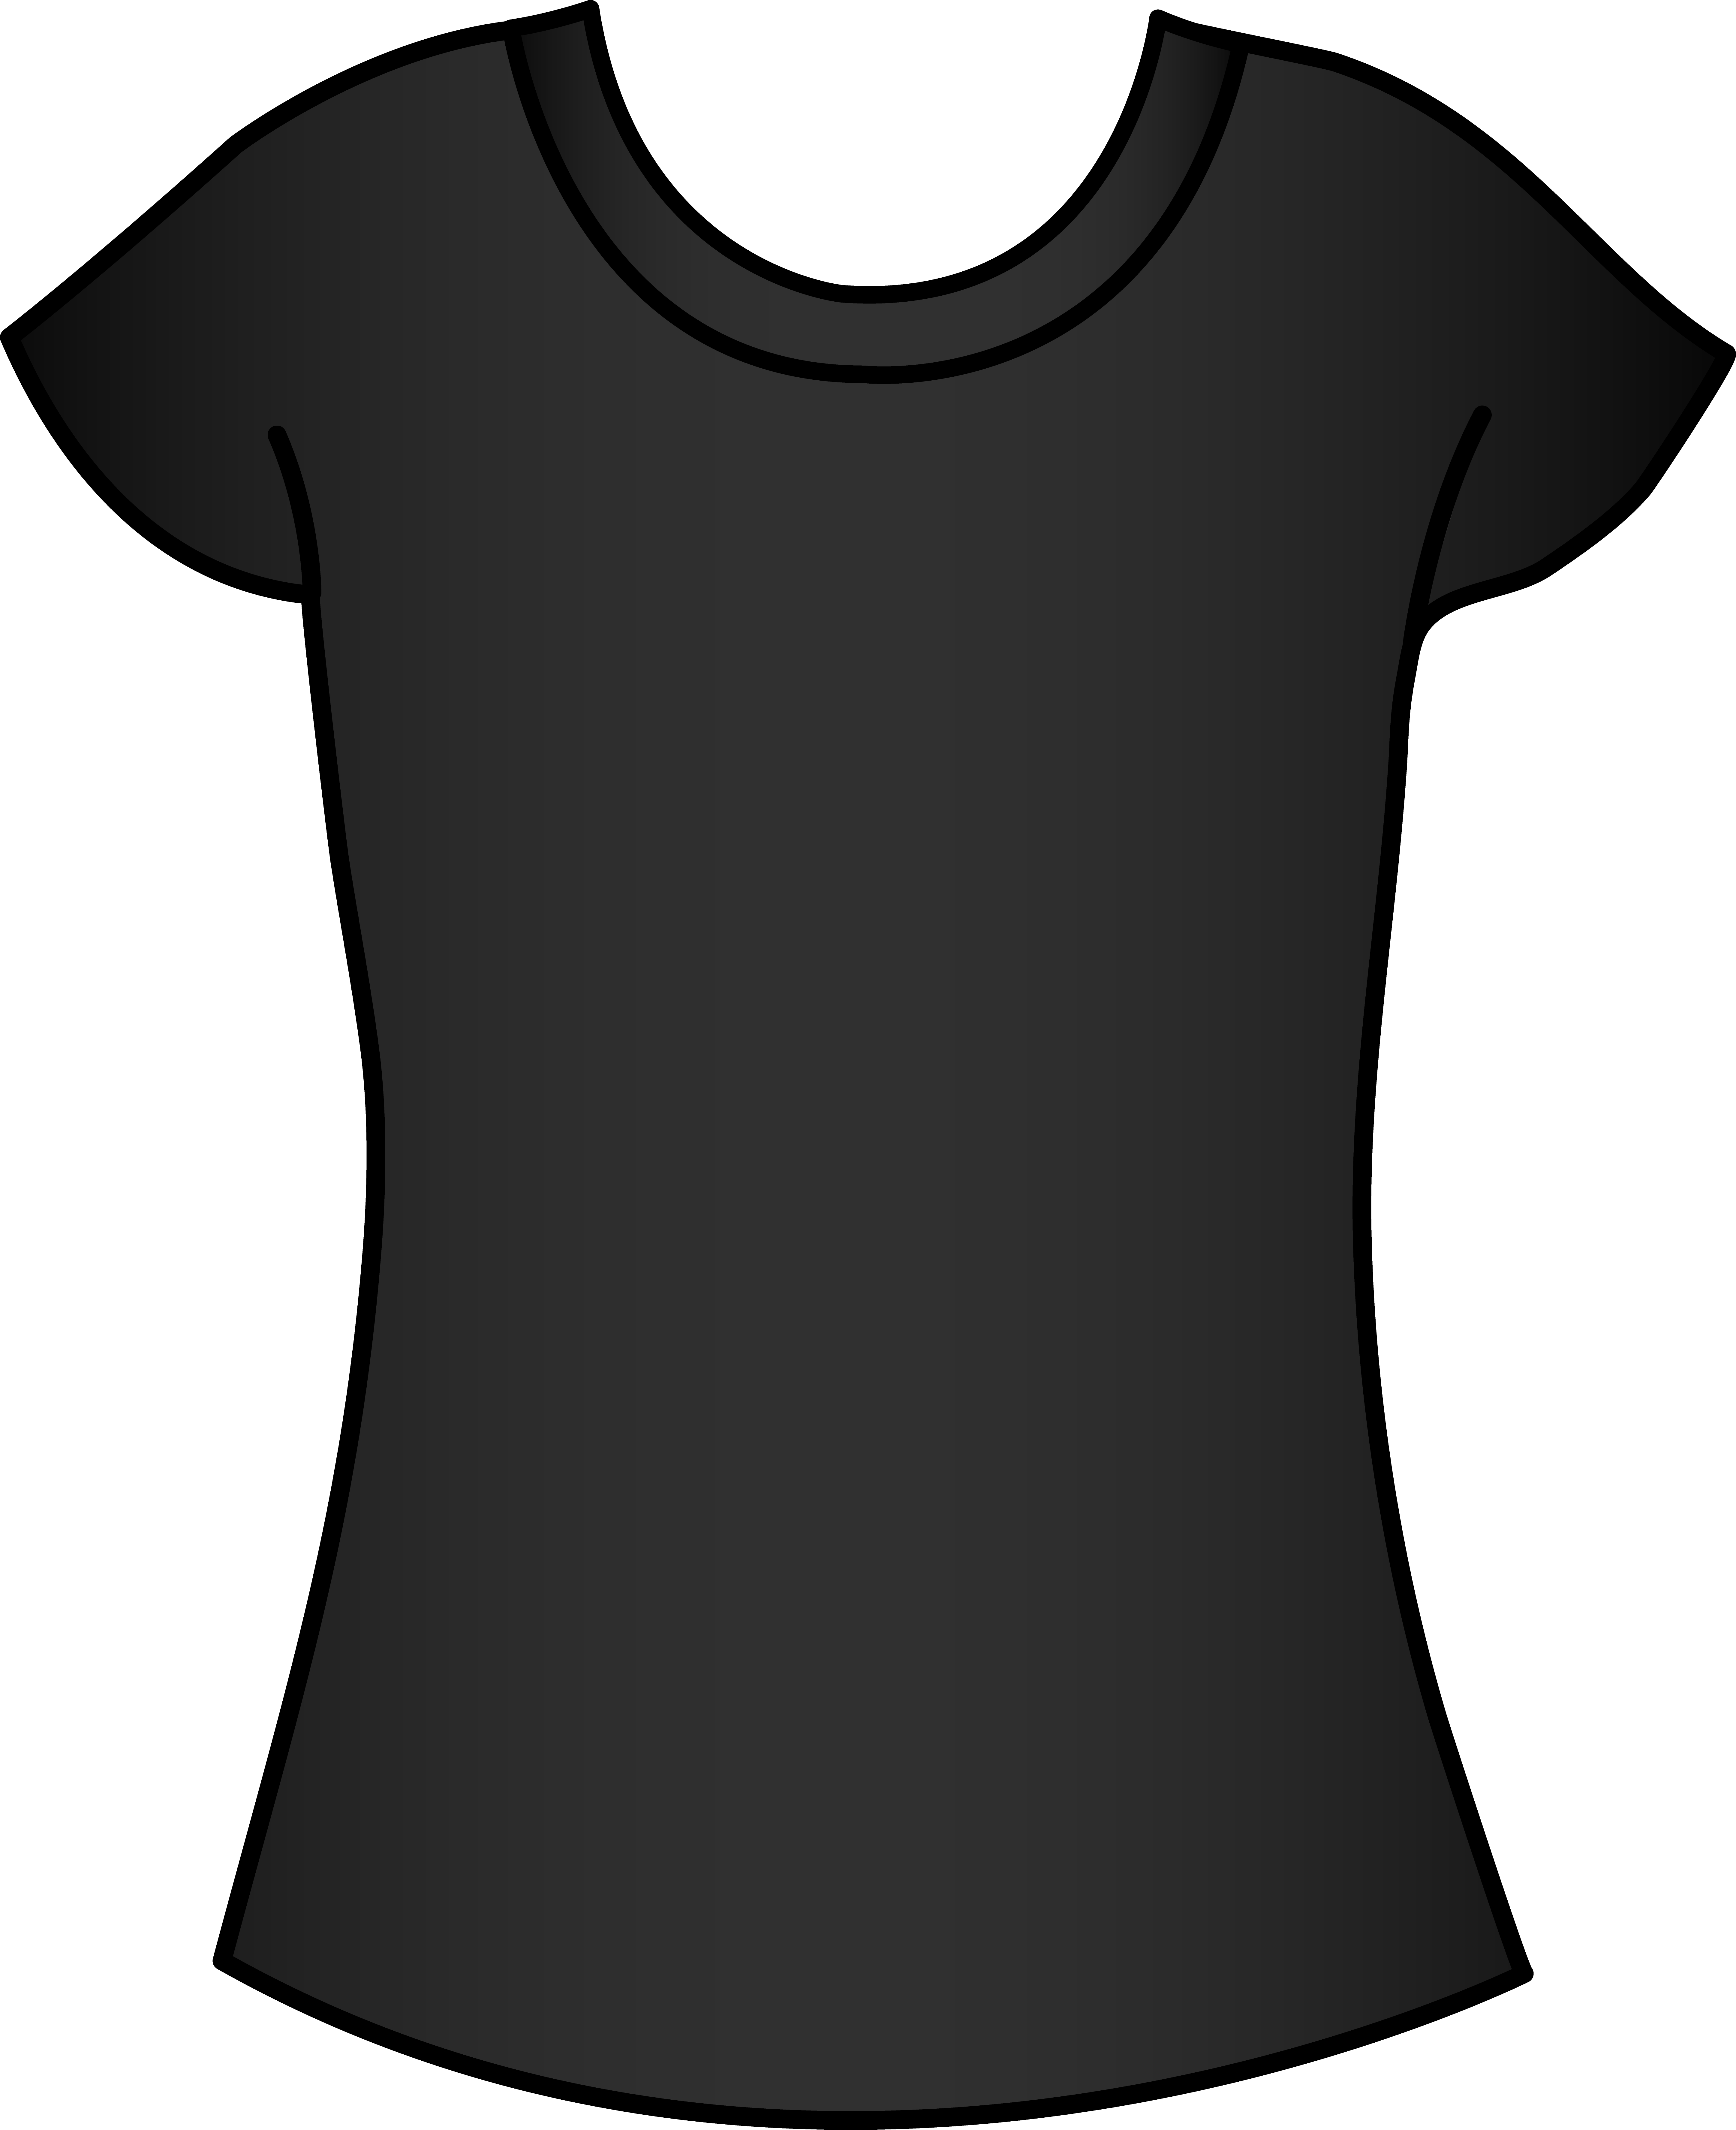 T Shirt Template Clipart | Free download on ClipArtMag